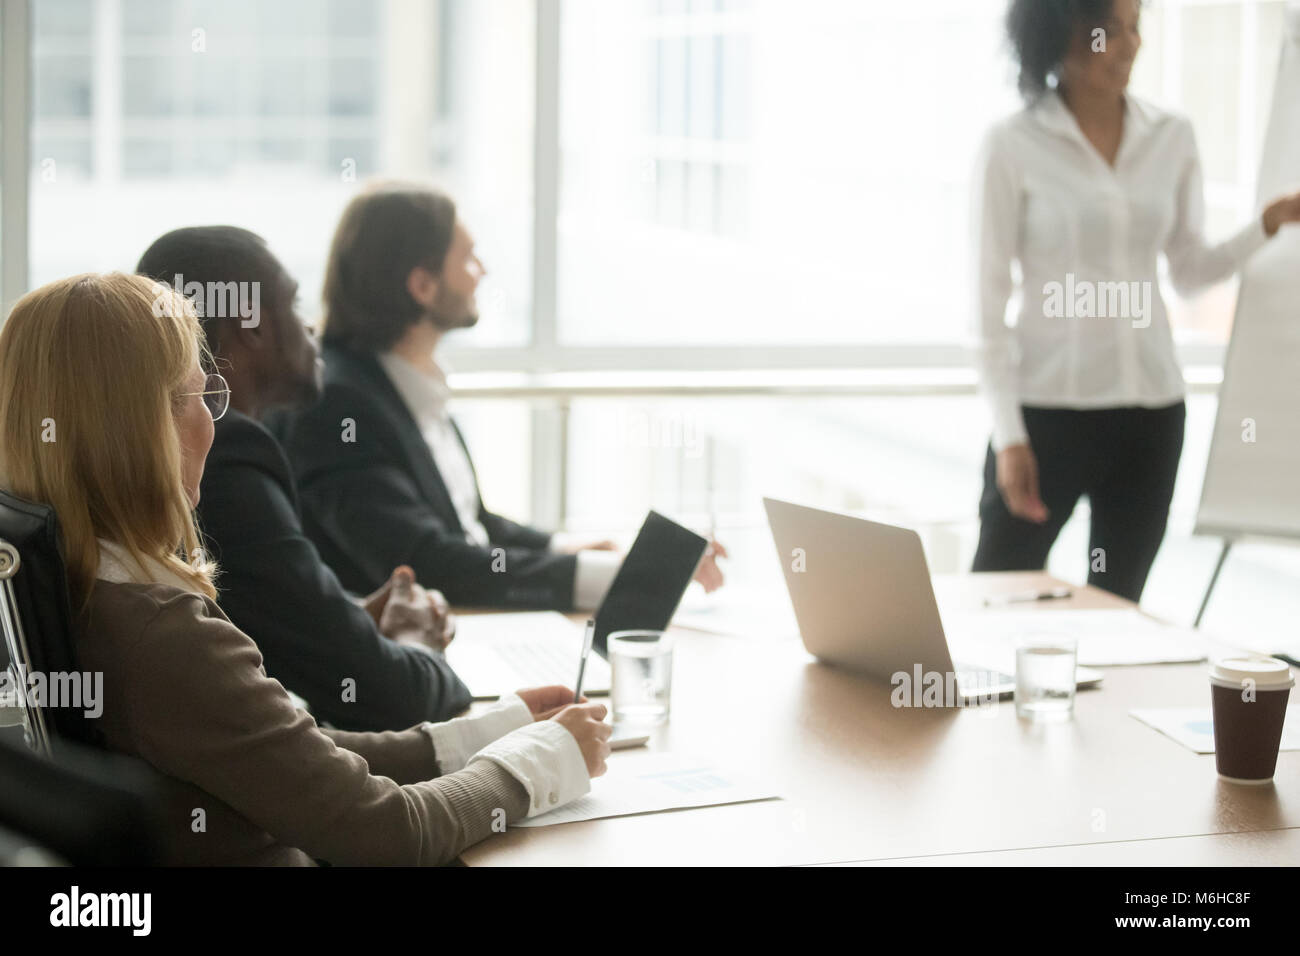 Multiracial businesspeople attending corporate group training or - Stock Image